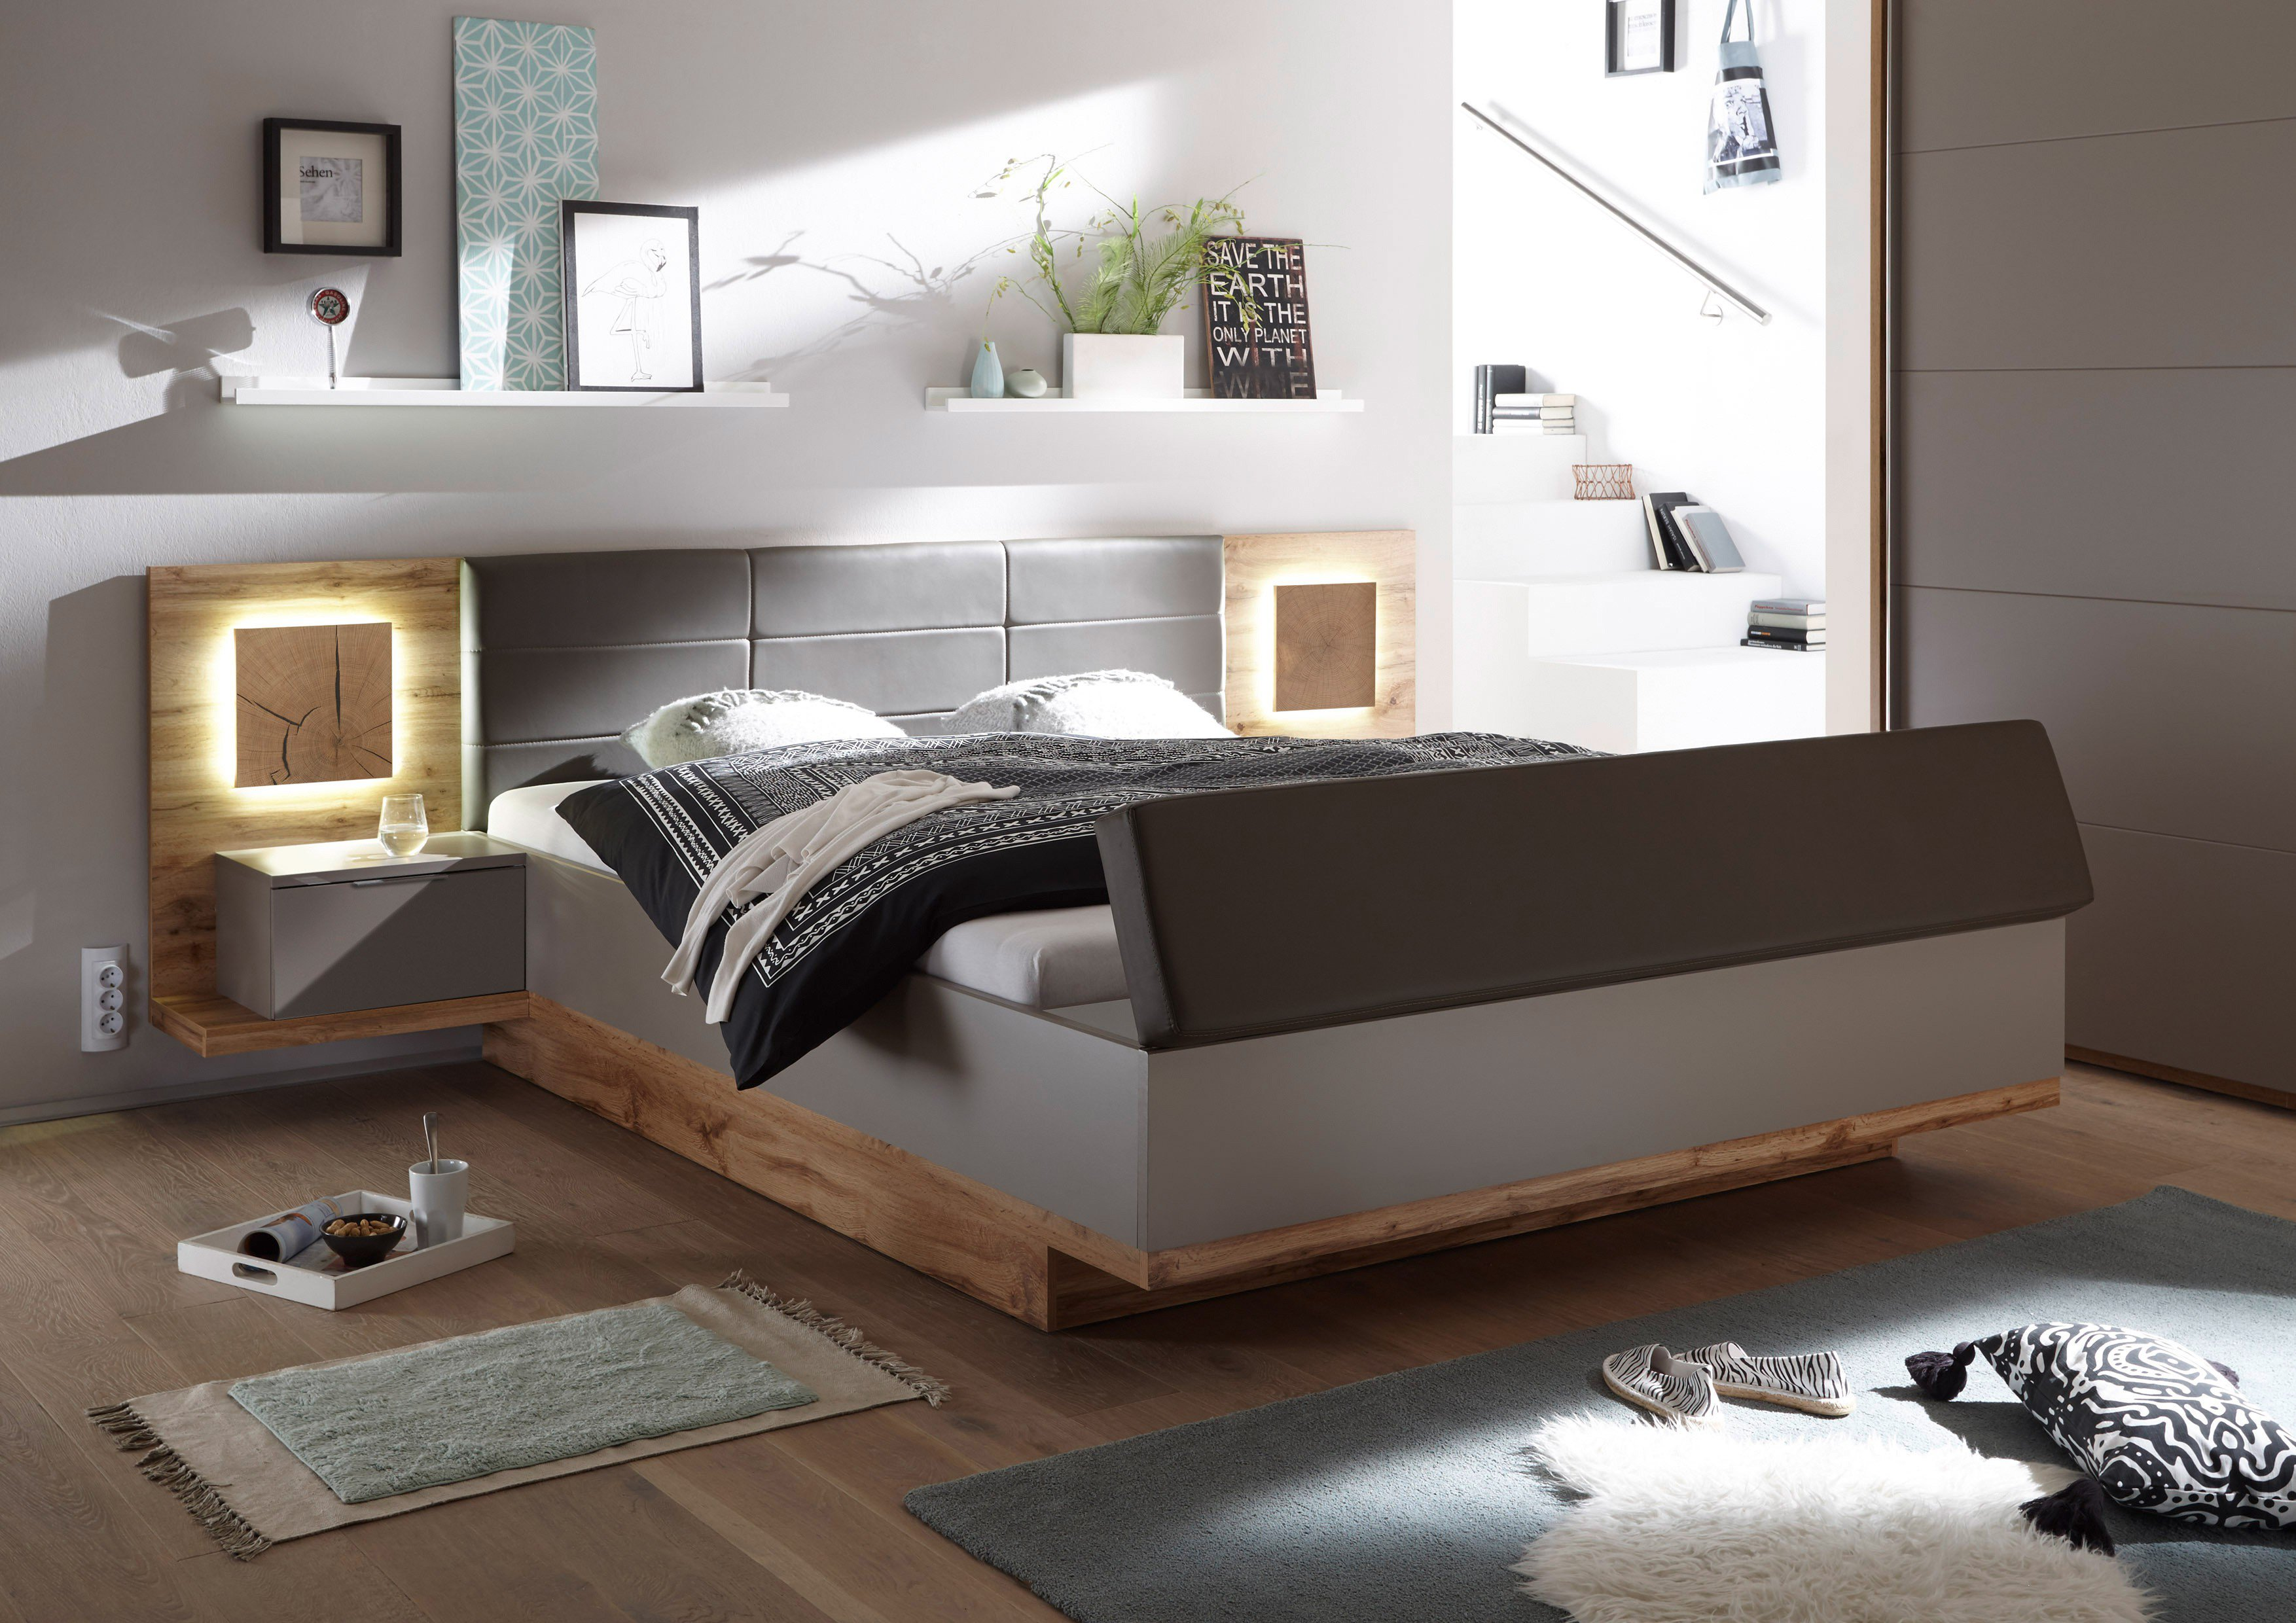 capri xl bett mit fu bank wildeiche nachbildung basalt m bel letz ihr online shop. Black Bedroom Furniture Sets. Home Design Ideas